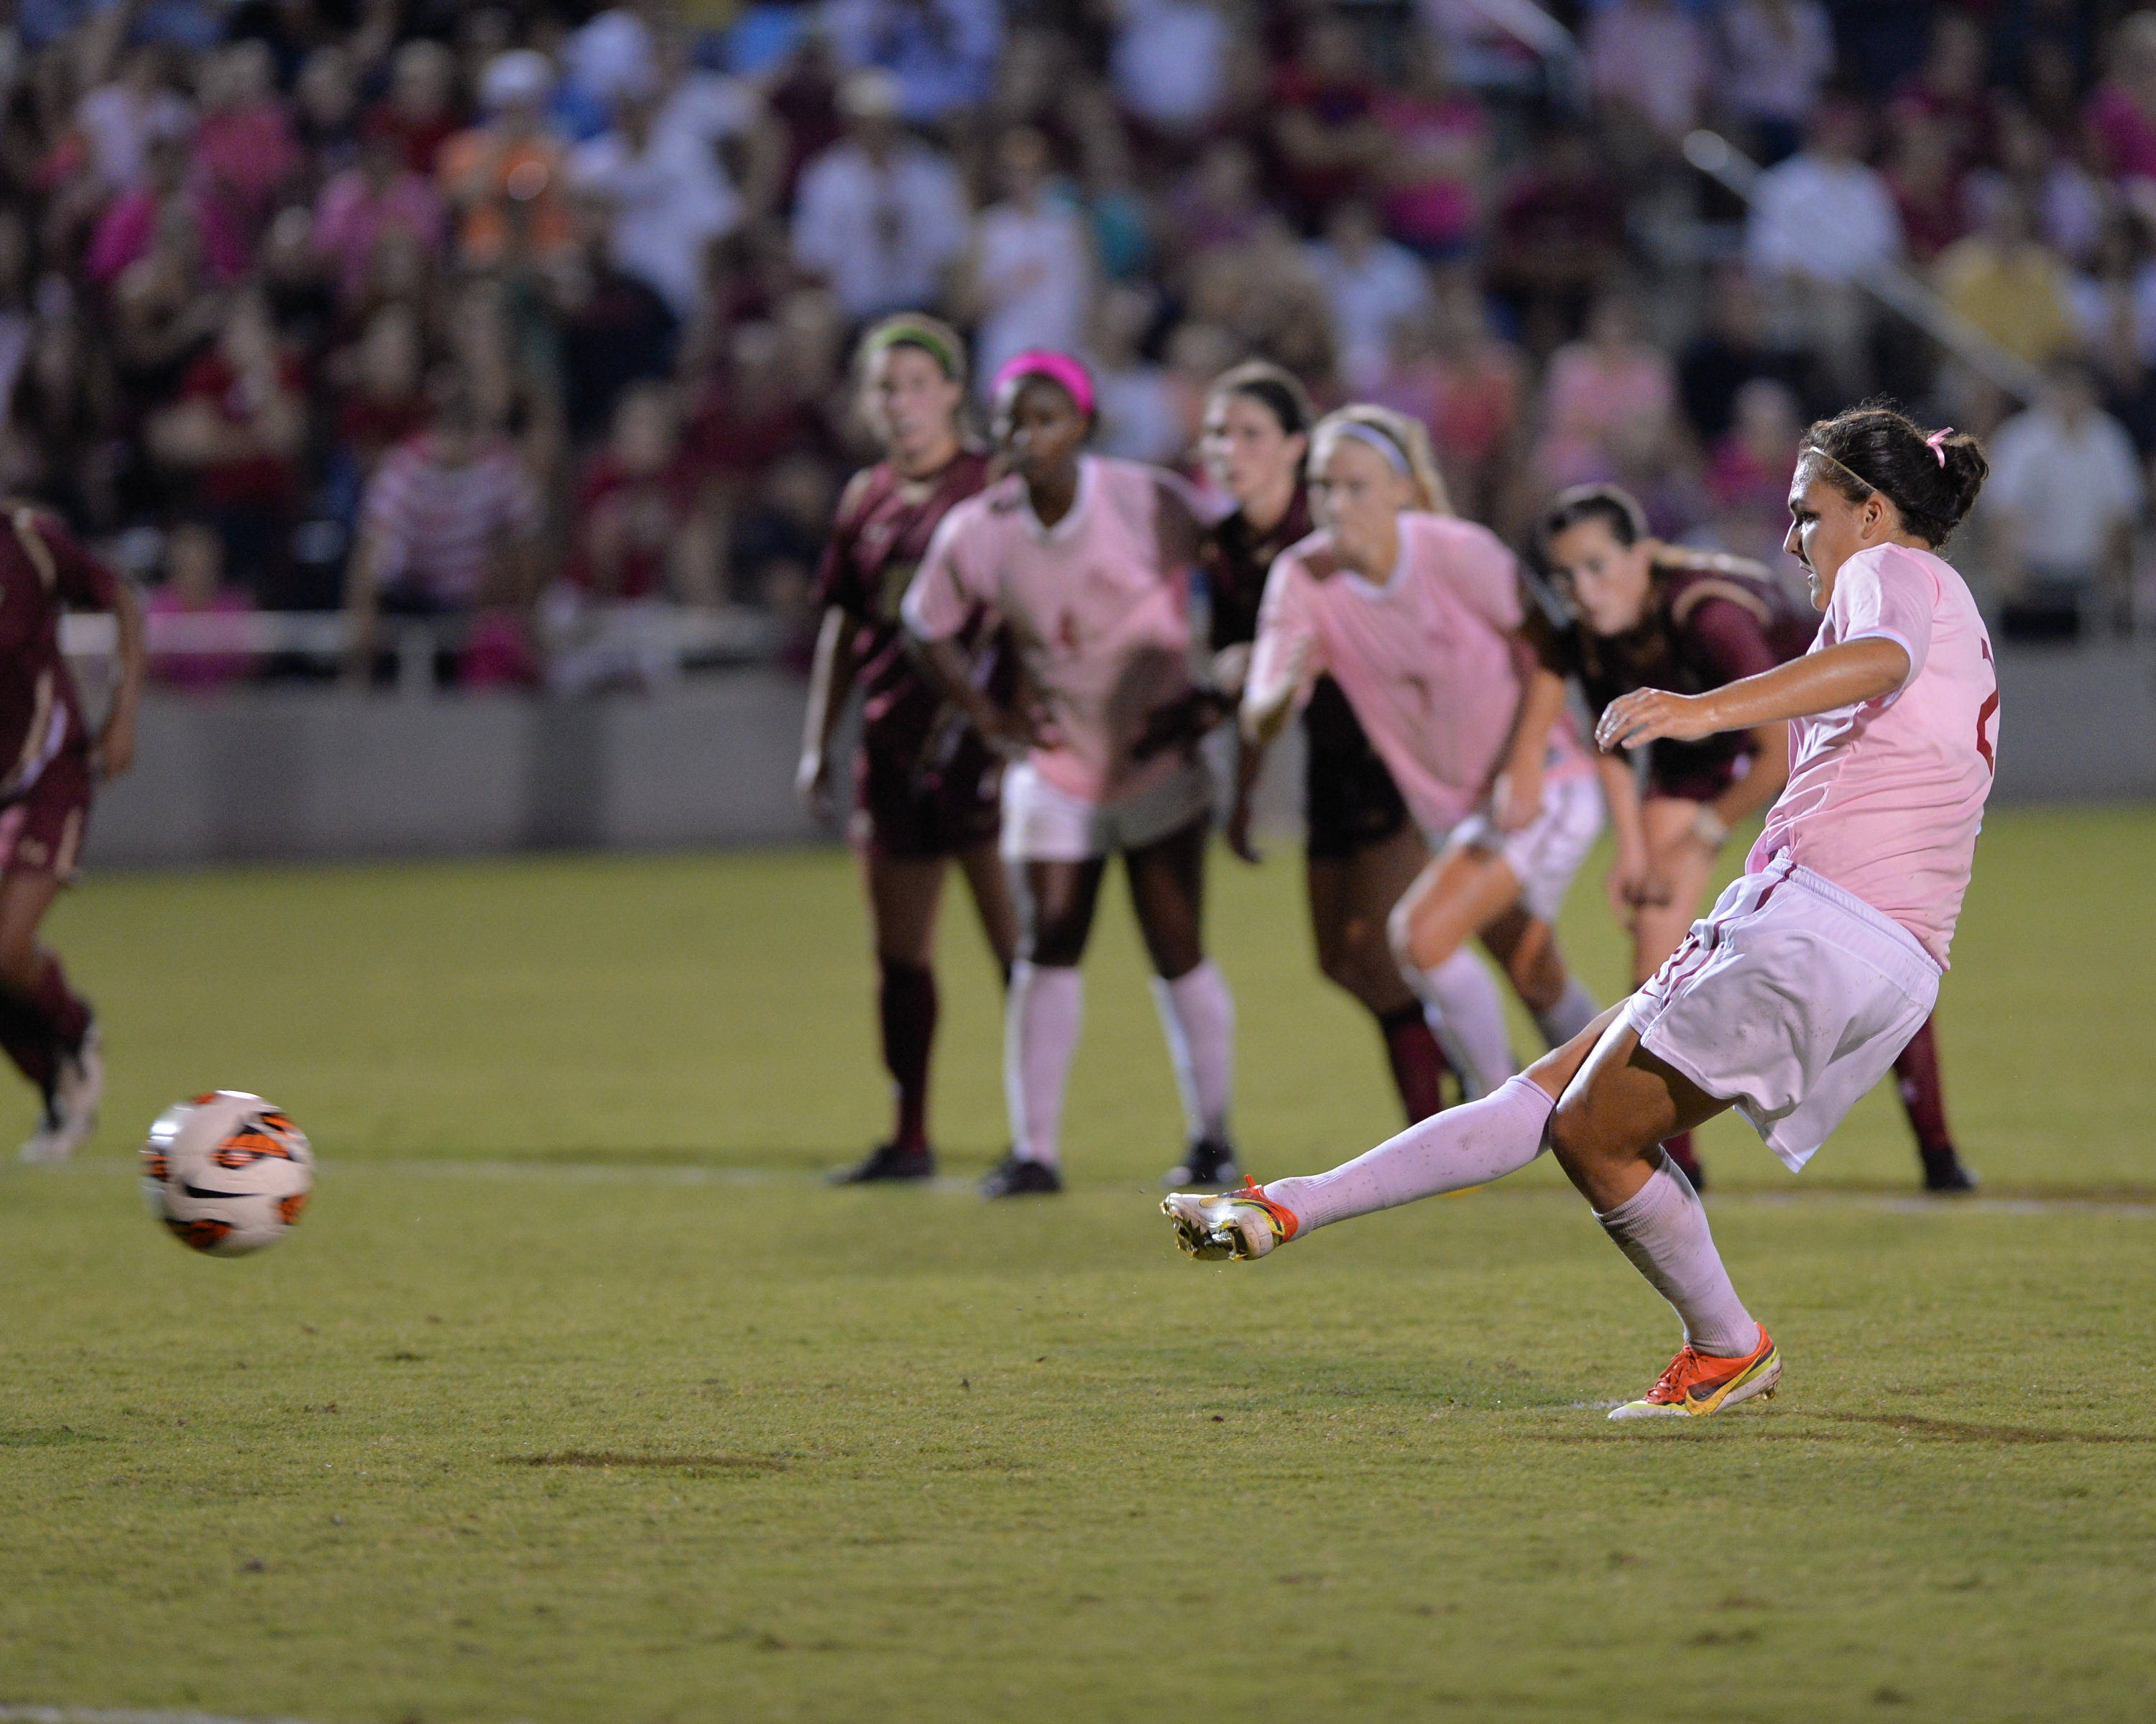 Marta Bakowska-Mathews scores the game-winner in the 82nd minute.